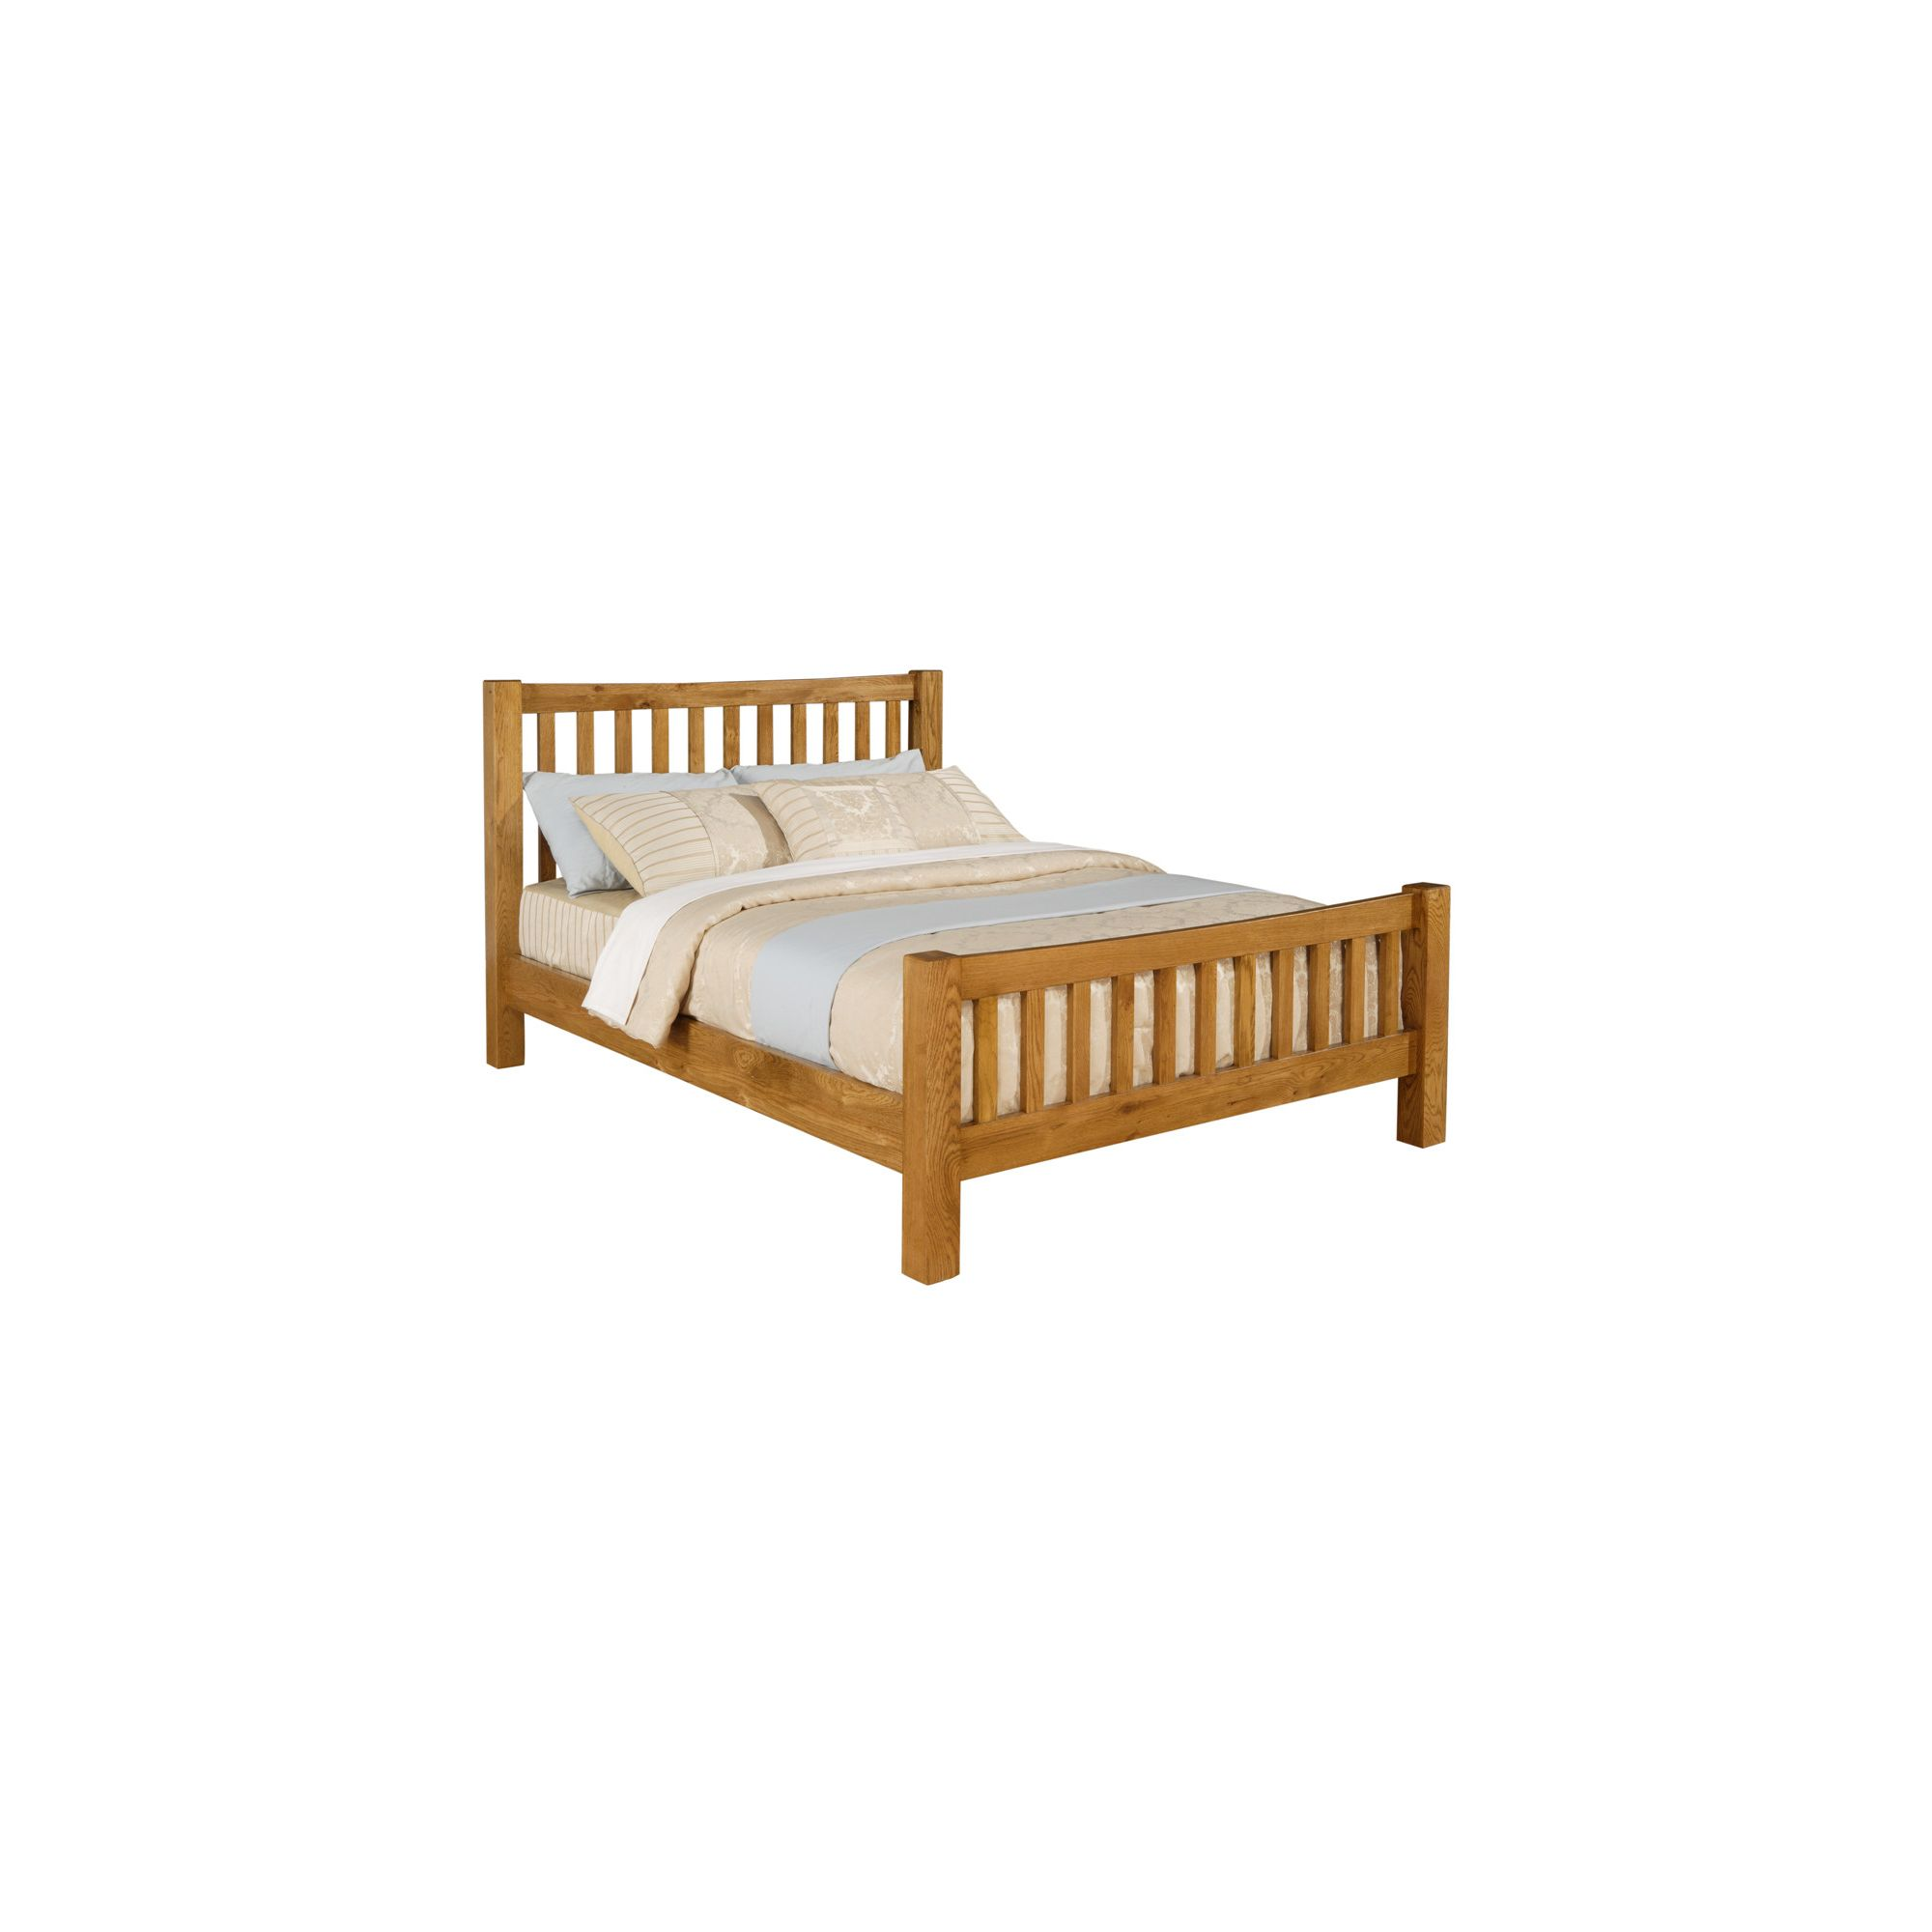 Altruna Denver Bed Frame - Double at Tescos Direct